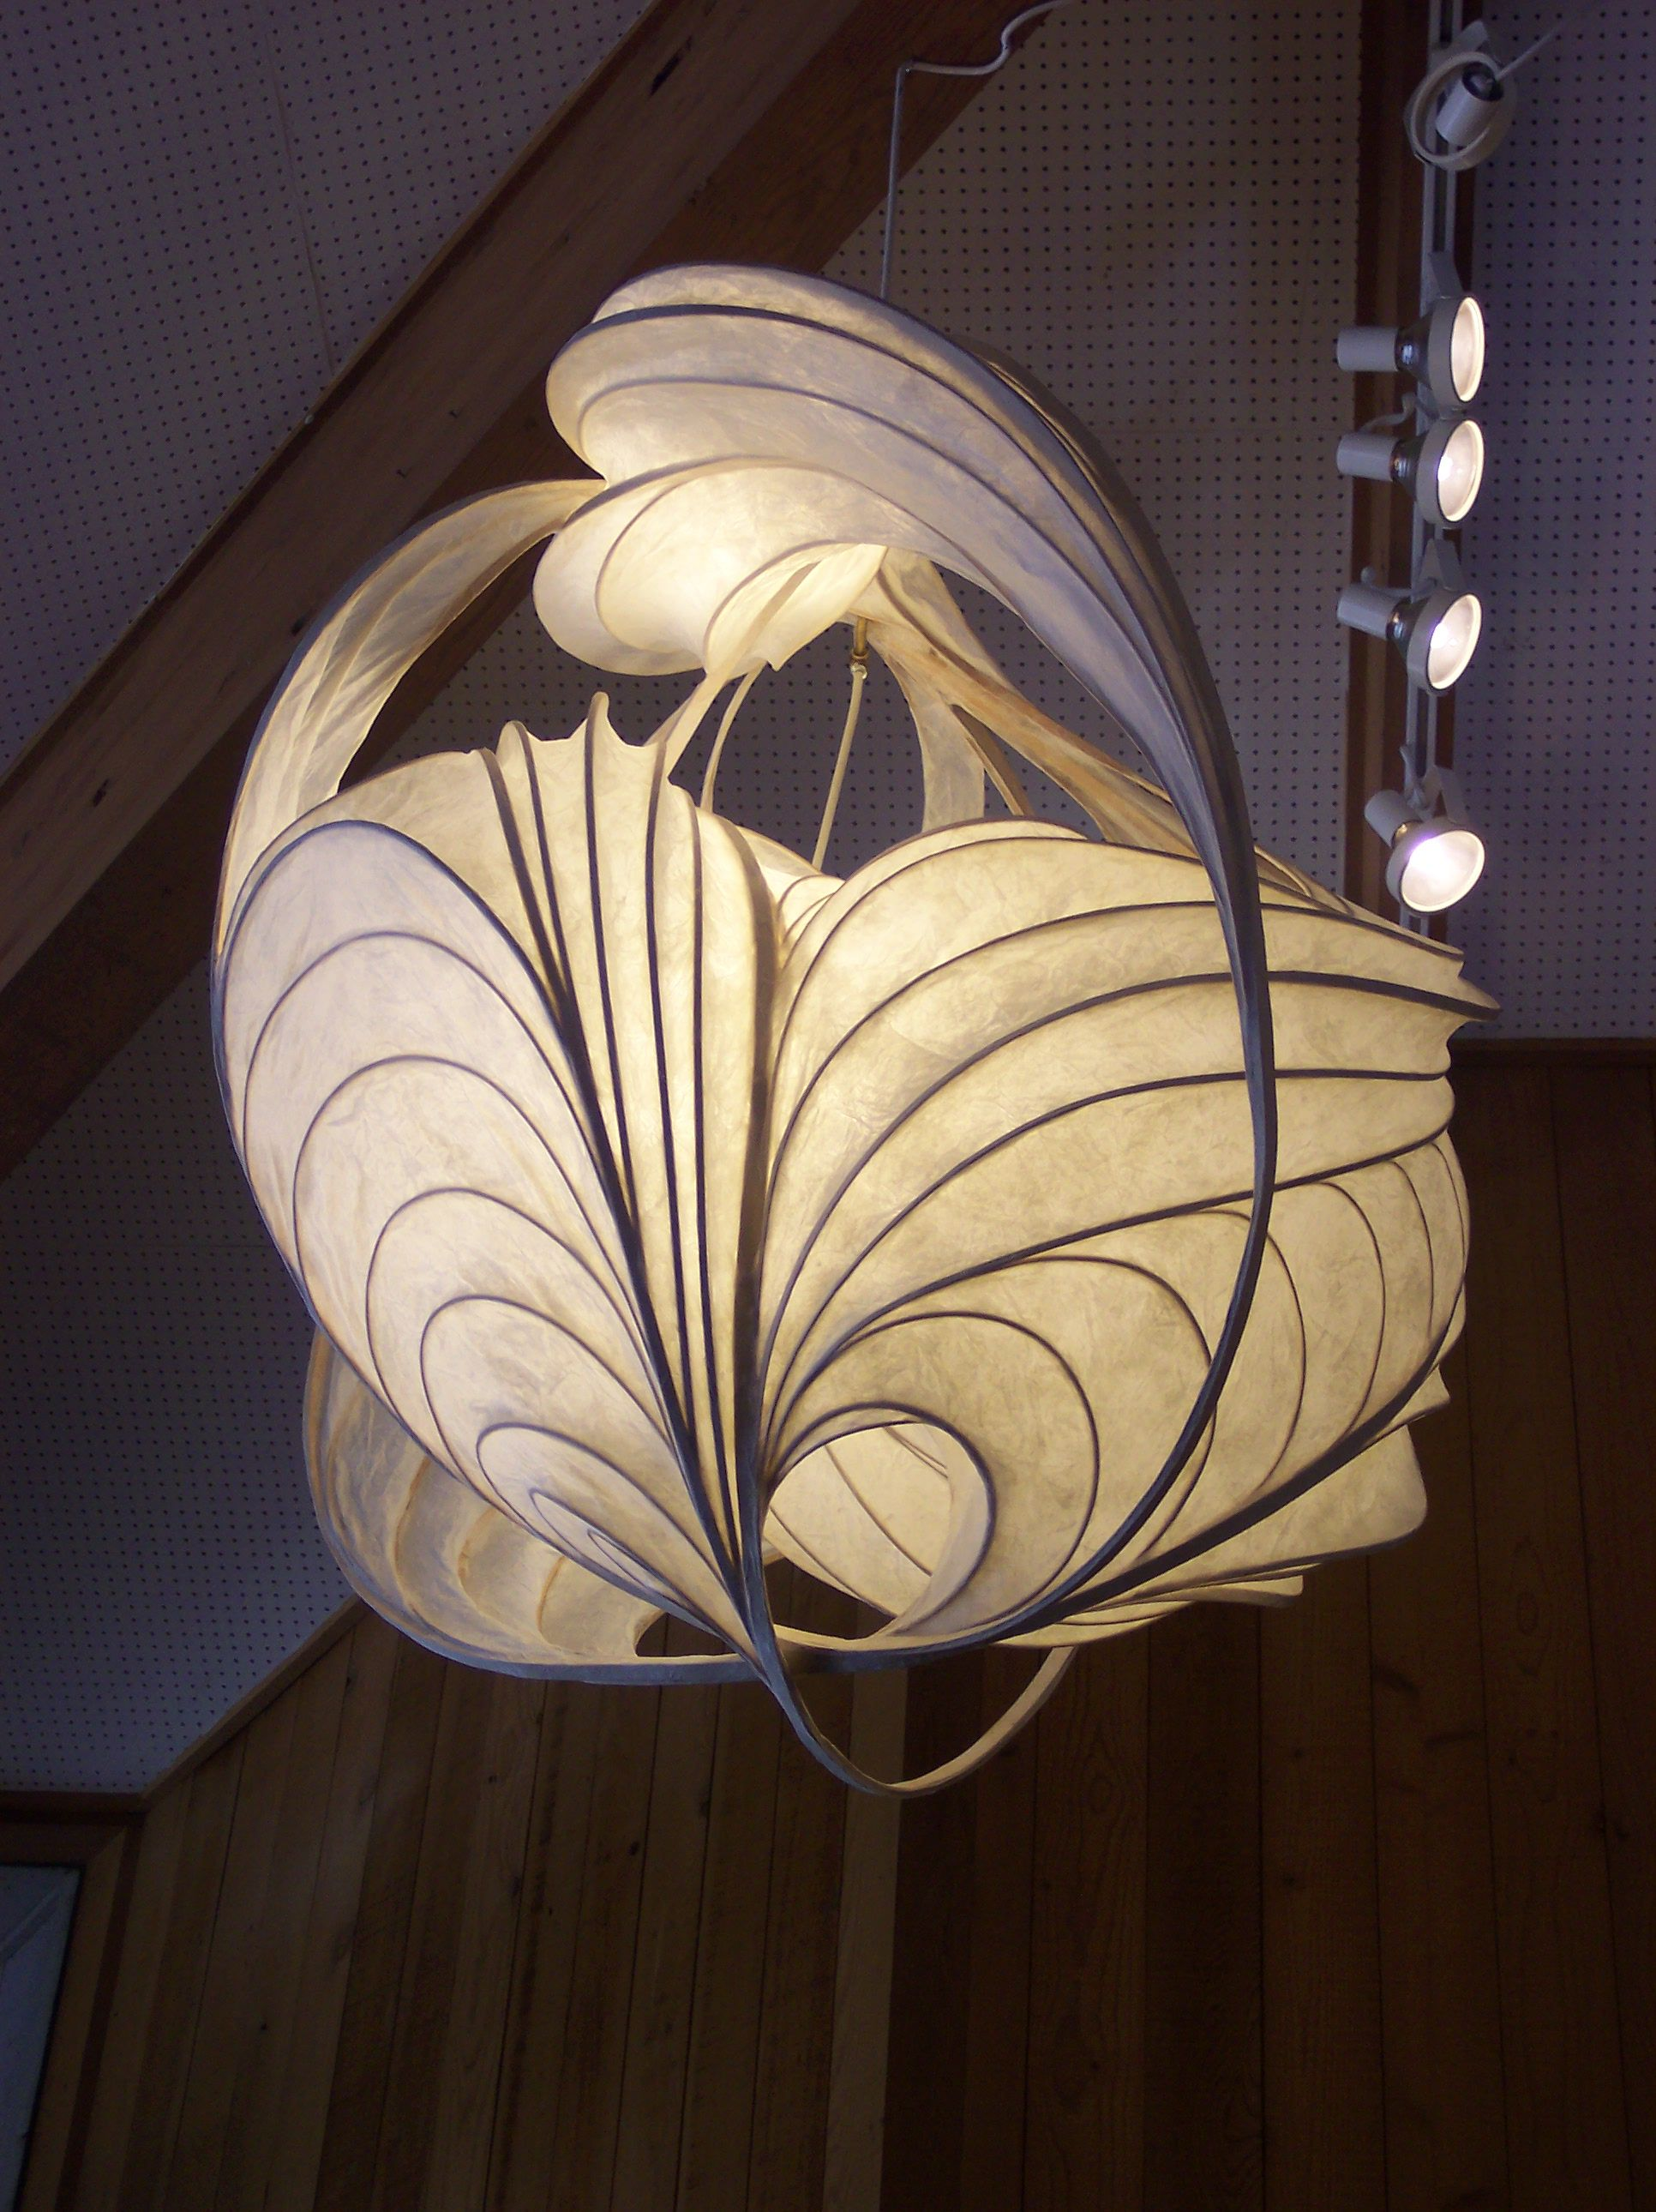 William Leslie lightsculpture made from thin strips of wood bent